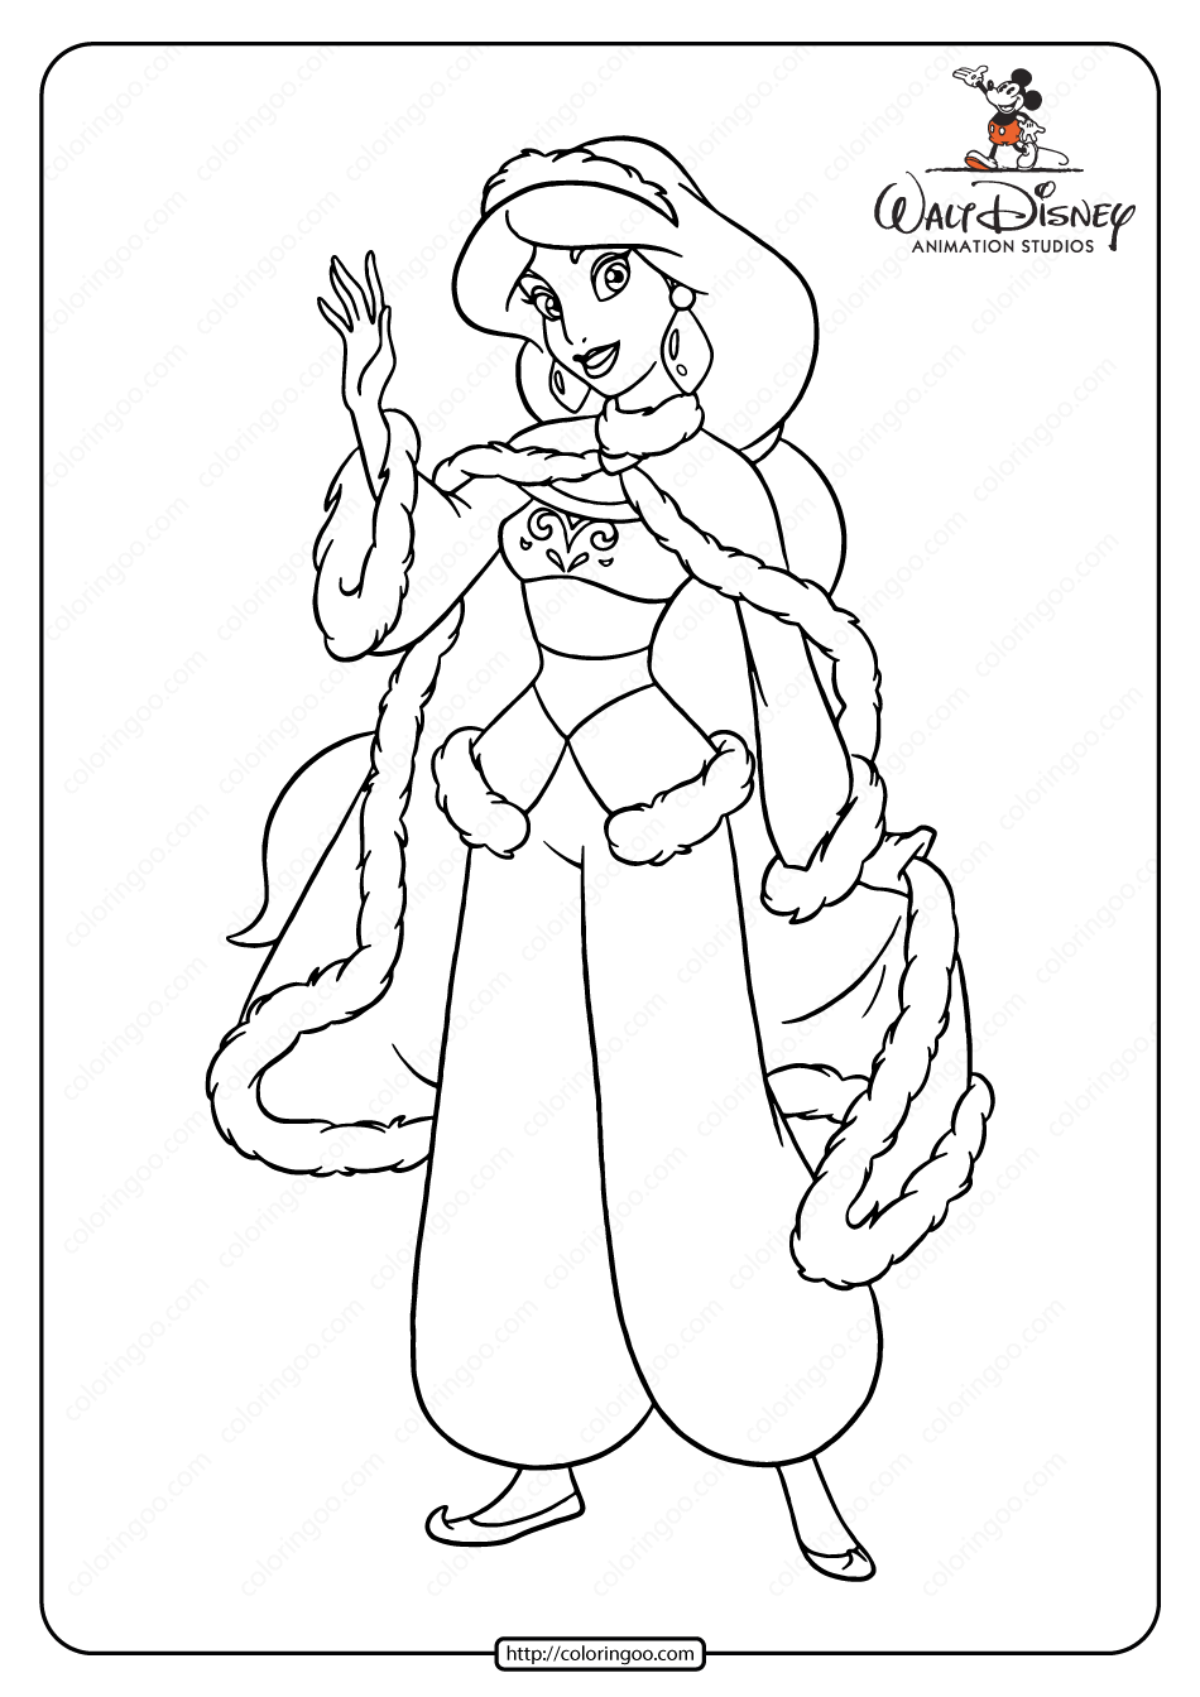 Princess Jasmine Coloring Pages Pictures - Whitesbelfast   1697x1200